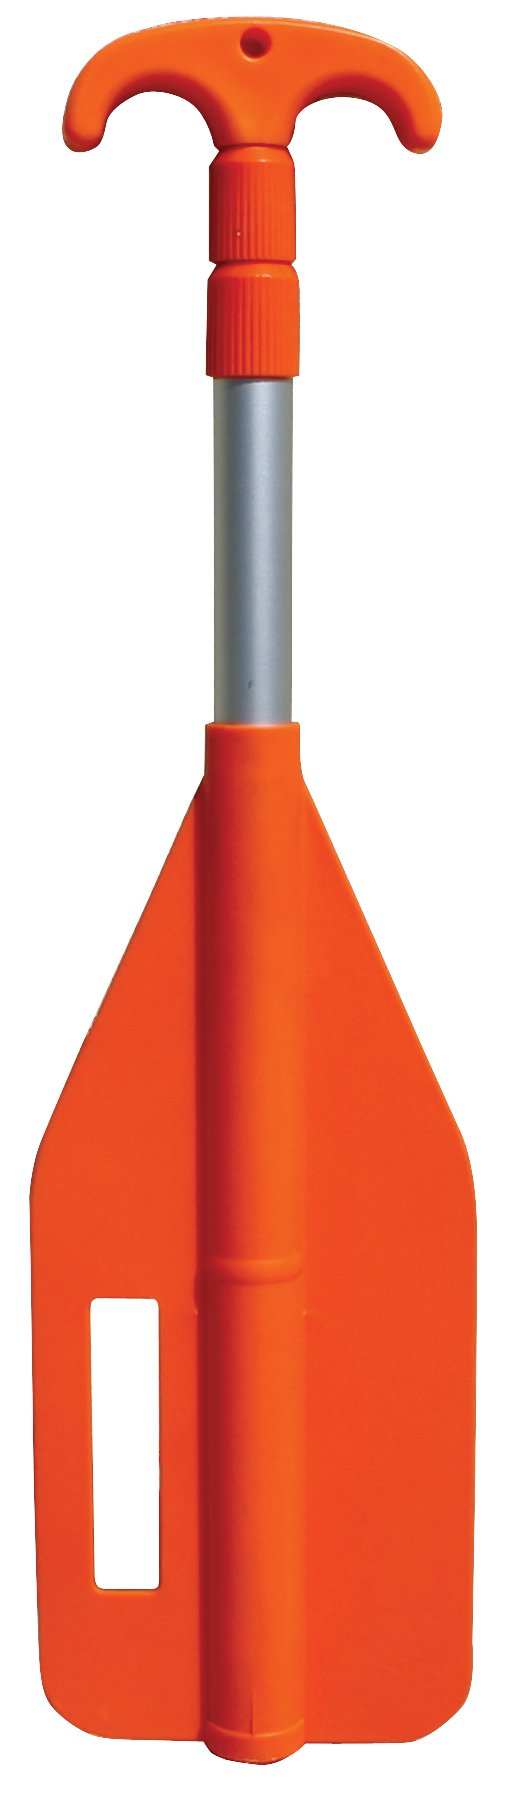 Telescoping Paddle with Boat Hook, 24''- 72'' by Airhead